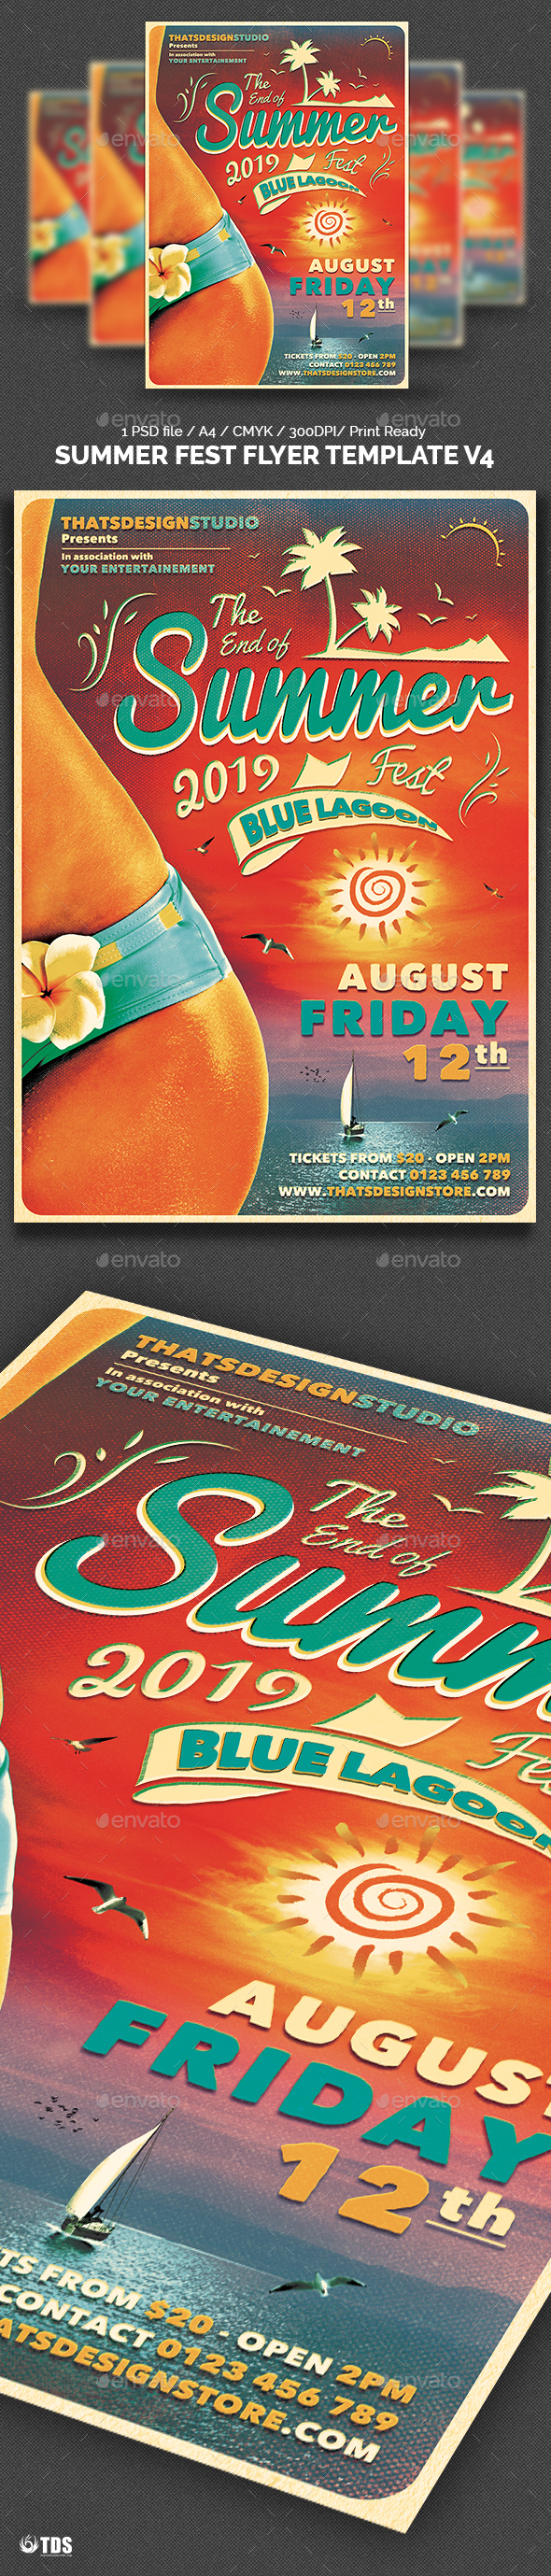 Summer Fest Flyer Template V4 - Clubs & Parties Events